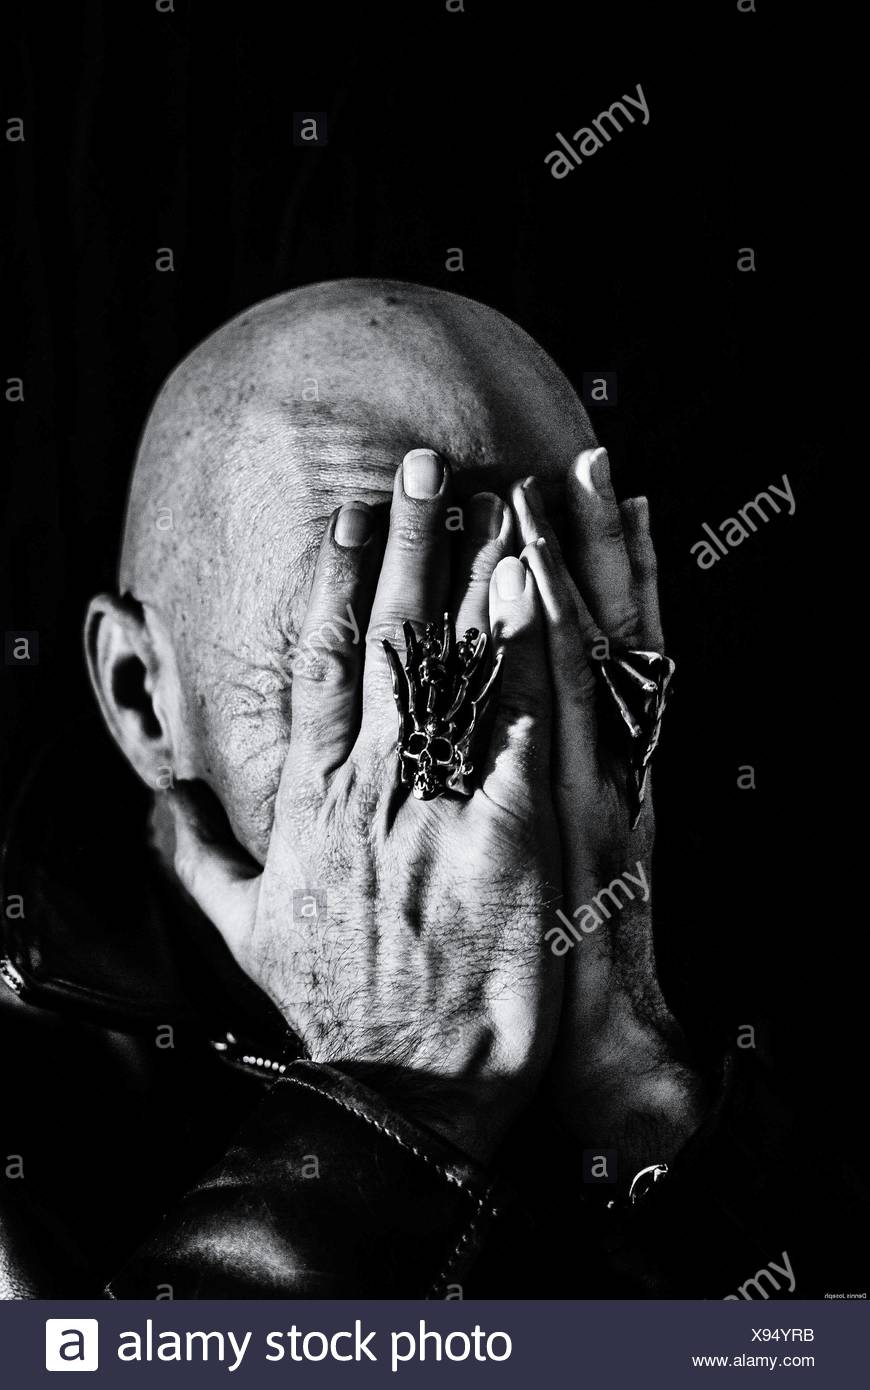 Bald Man Covering Face With Hands - Stock Image